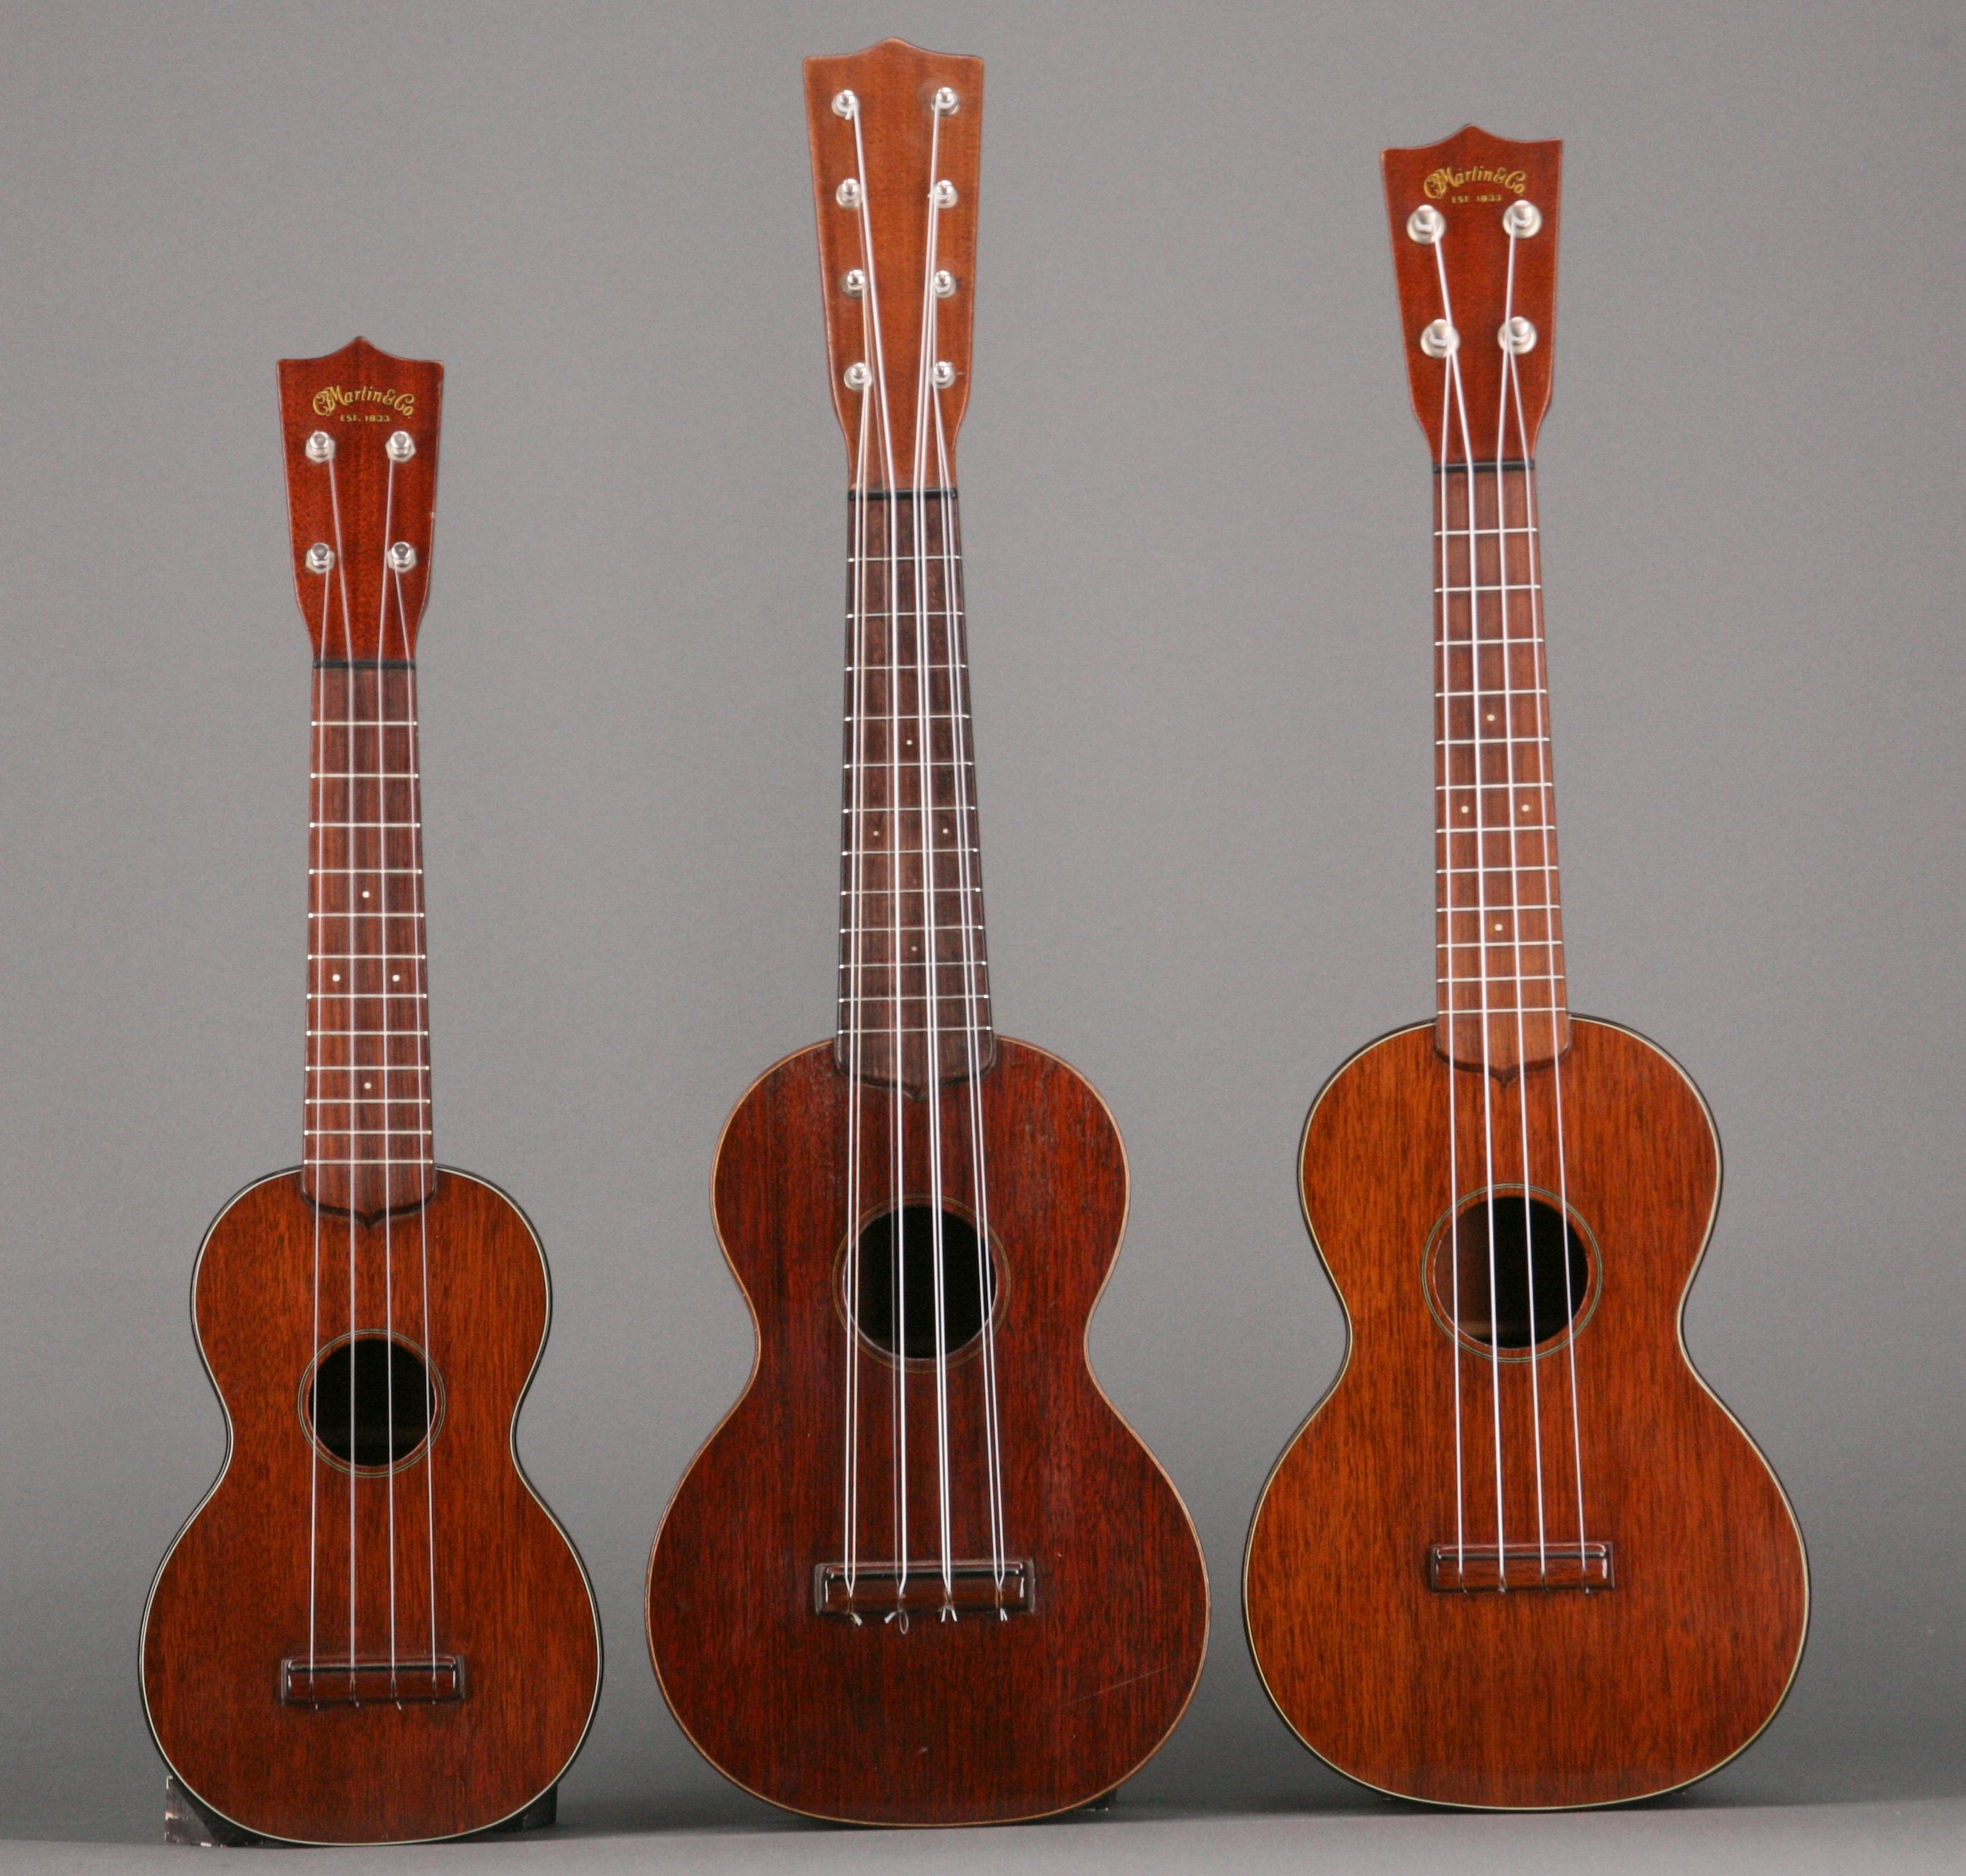 Shown here are three Martin mahogany ukes: On the left is a Style 1 soprano from the late 1940s; in the middle is a Style 1 taropatch from the mid-1920s; and on the right is Martin's concert model, also from the late '40s.